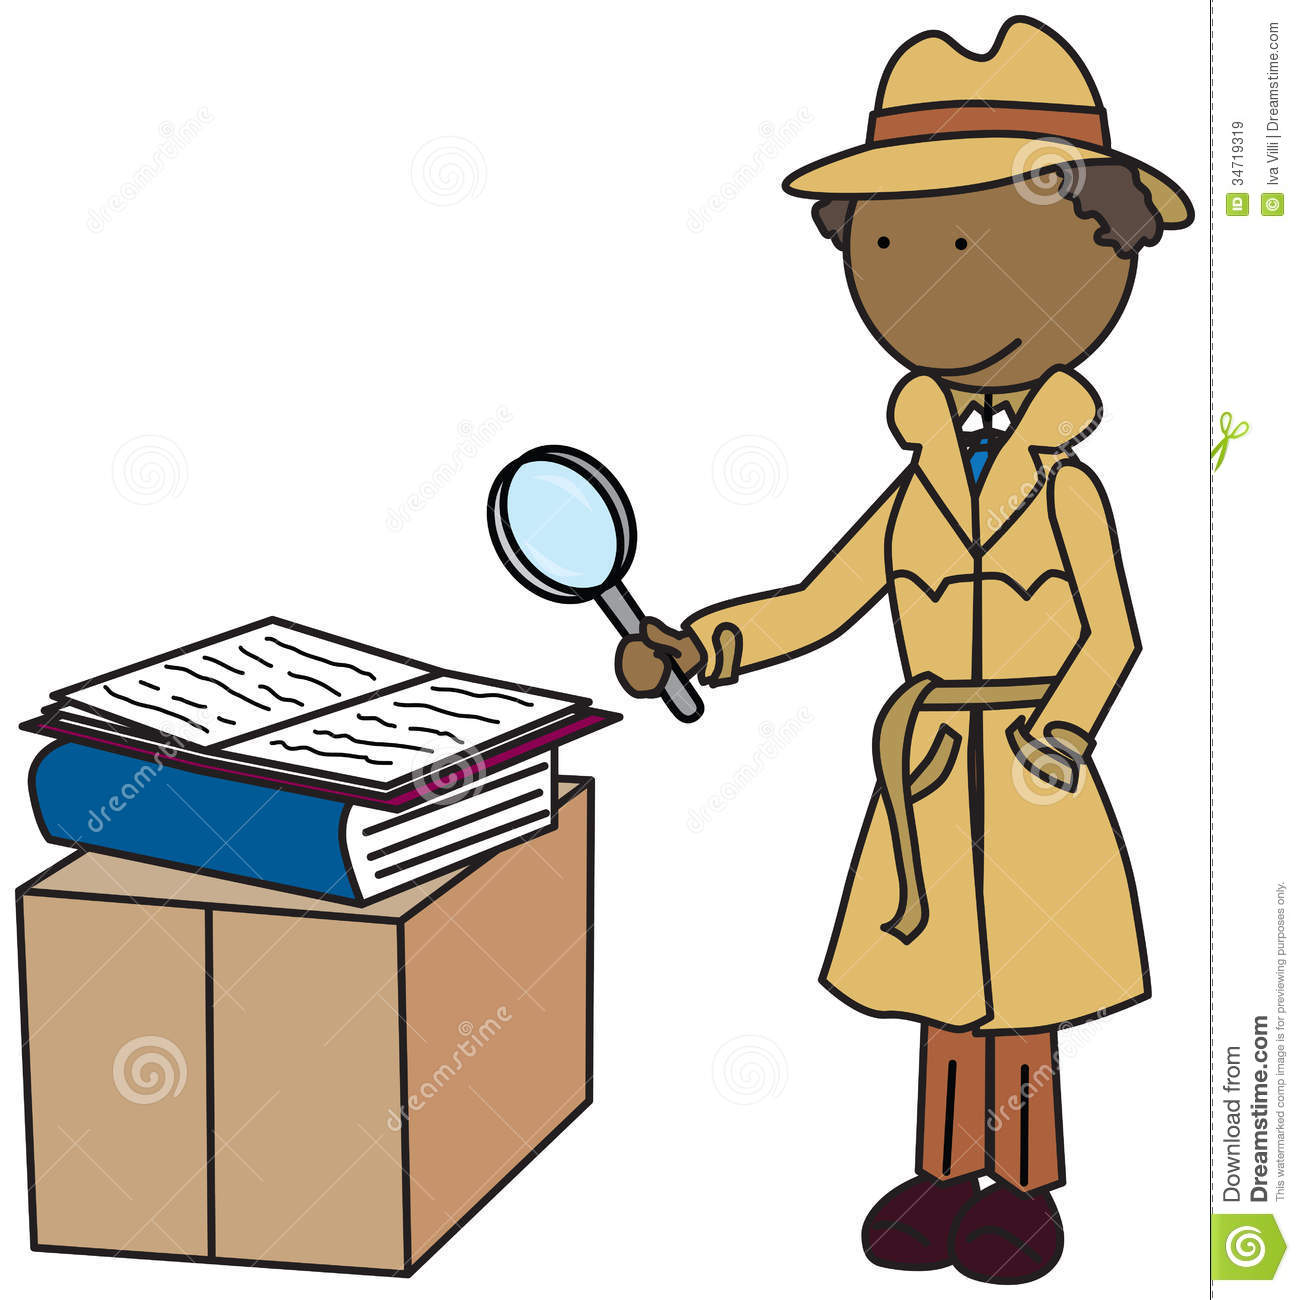 magnifying%20glass%20detective